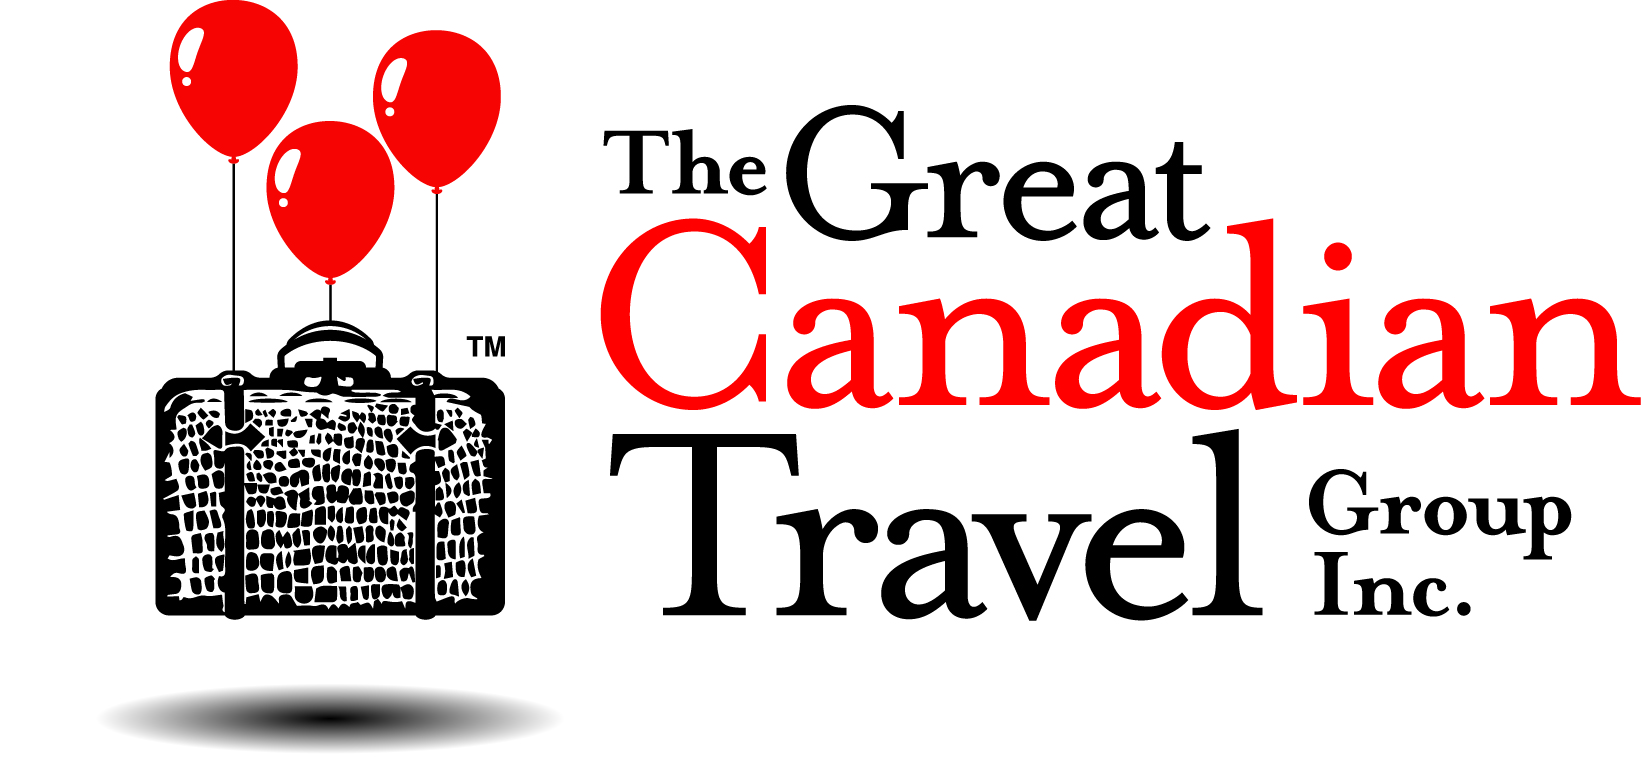 The Great Canadian Travel Group Inc.